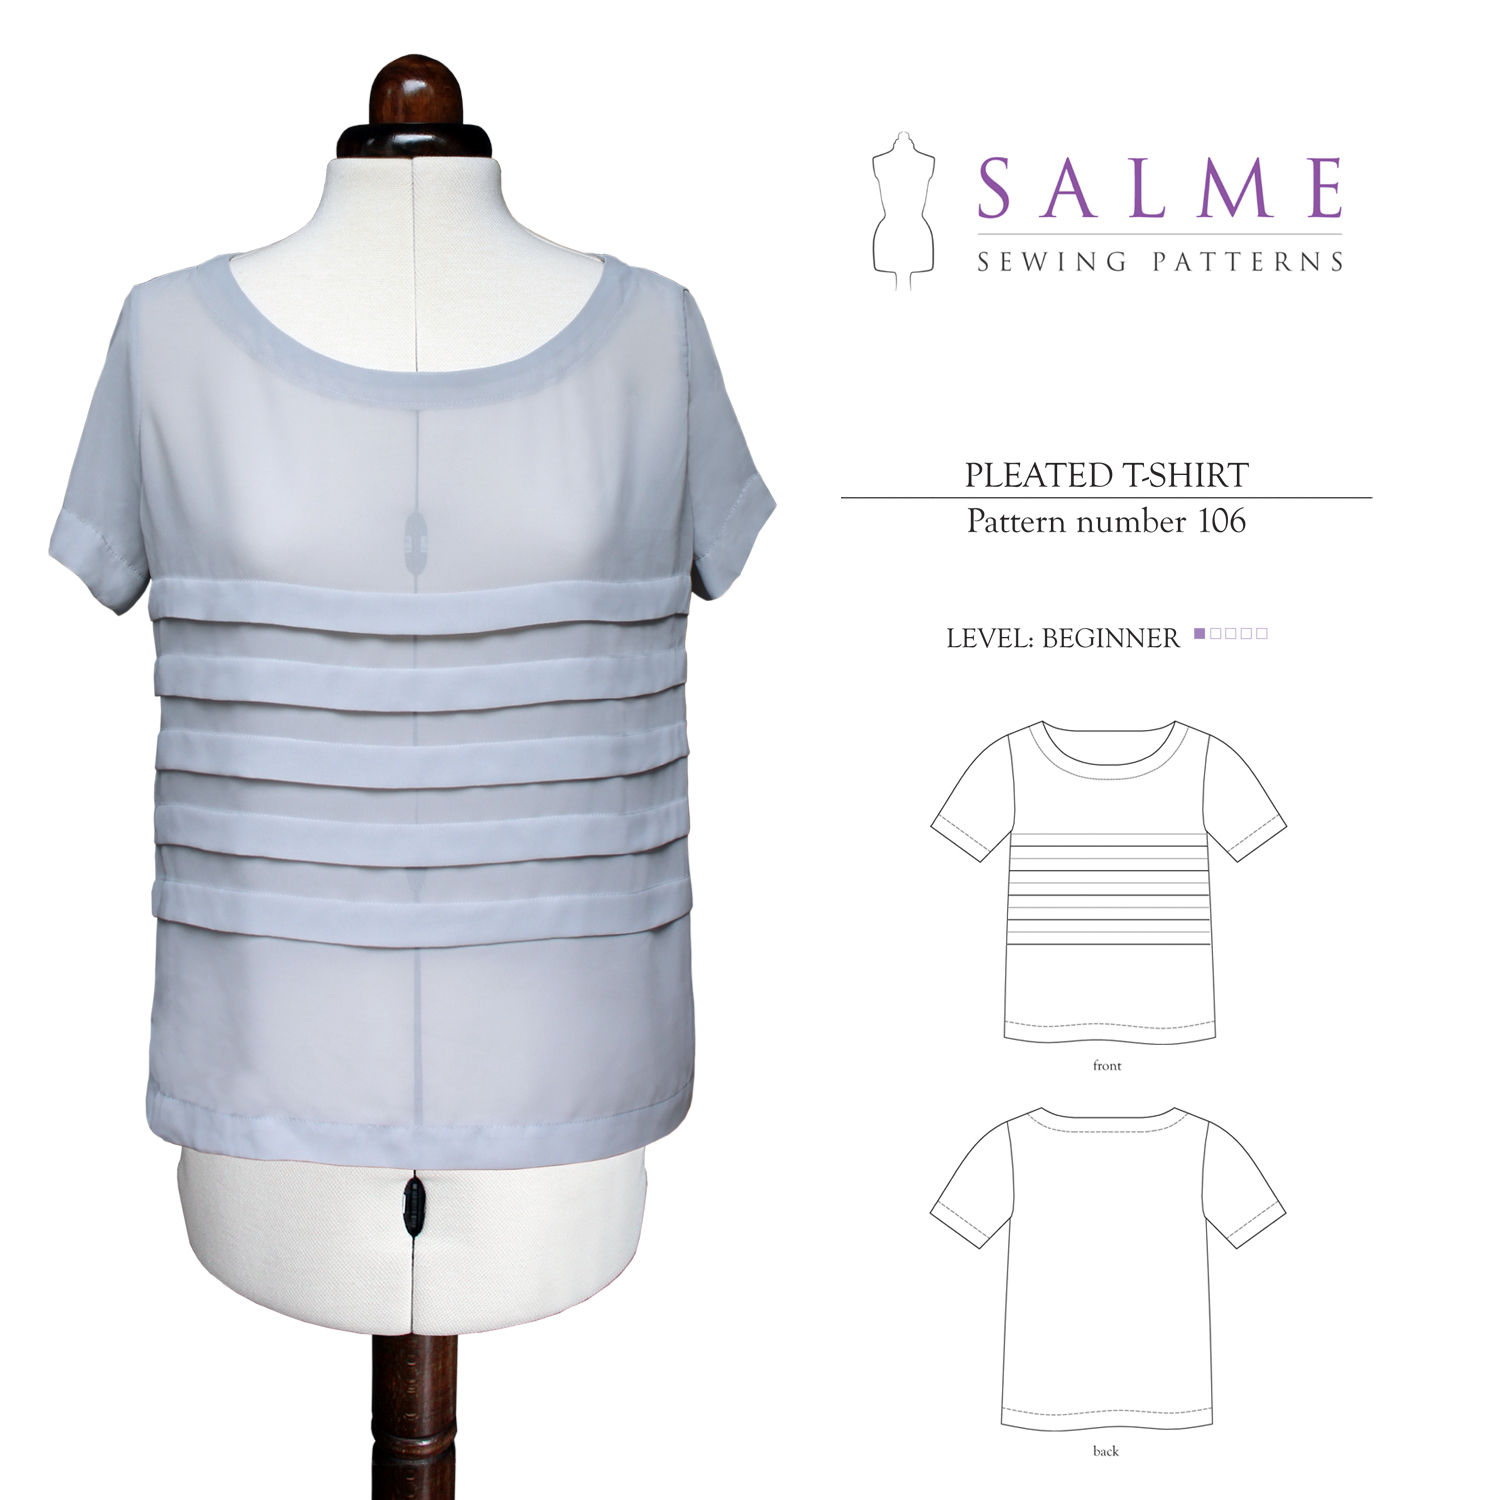 Salme Sewing Patterns Pleated T-Shirt Downloadable Pattern 106